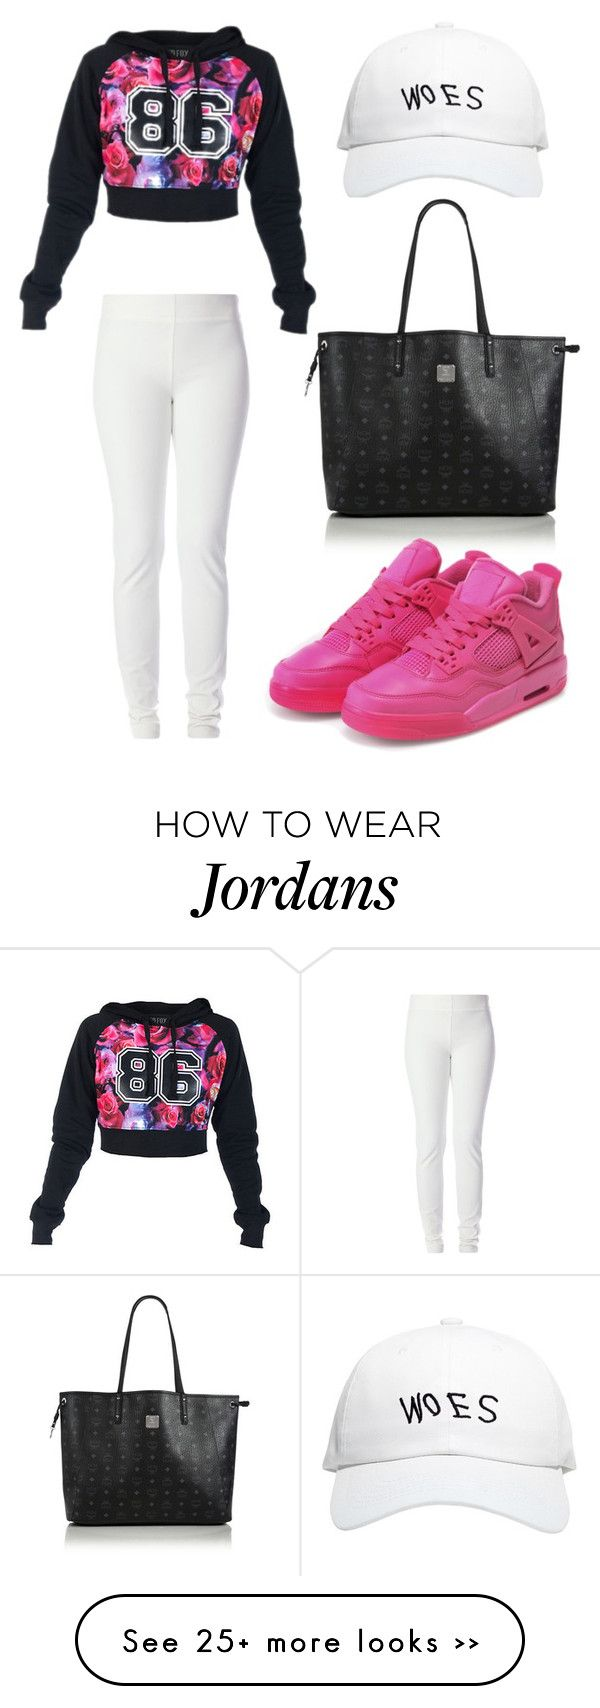 """Untitled #2097"" by ceceiscool1995 on Polyvore featuring moda, October's Very Own, MCM, Joseph y NIKE"